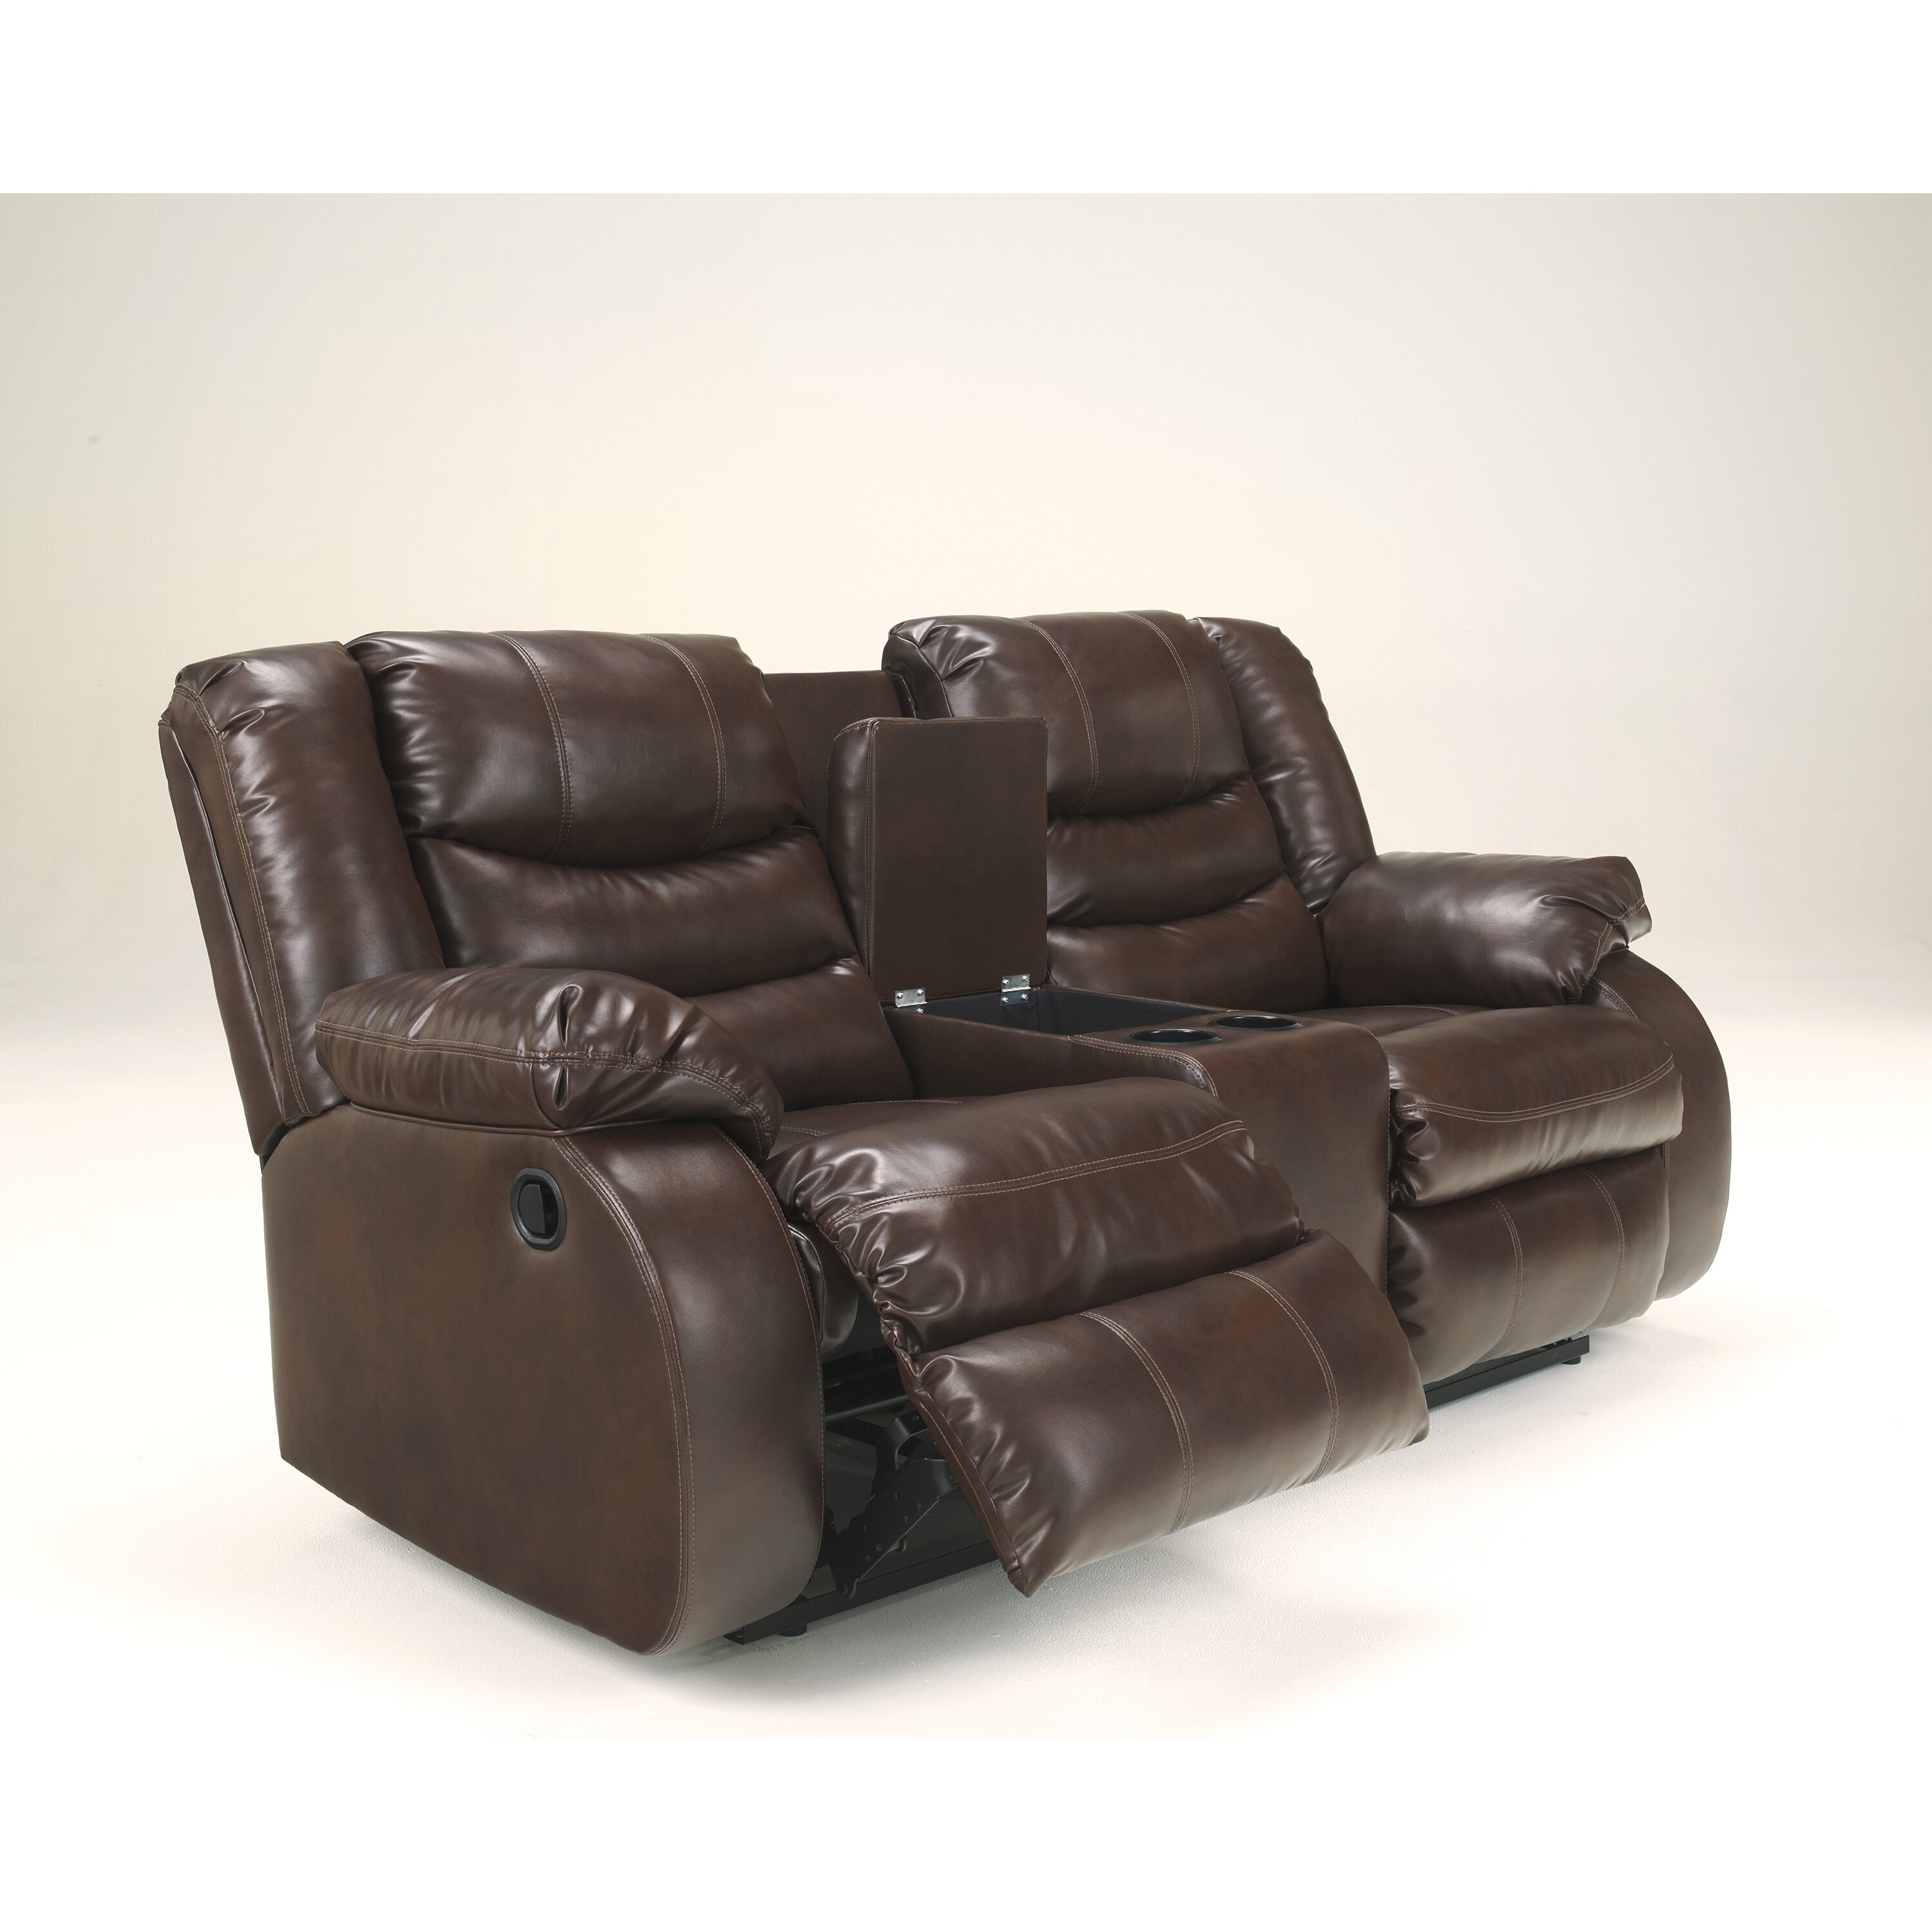 Darby Home Co Summey Leather Loveseat amp Reviews Wayfairca : Yardley2BReclining2BLoveseat from www.wayfair.ca size 3000 x 3000 jpeg 783kB